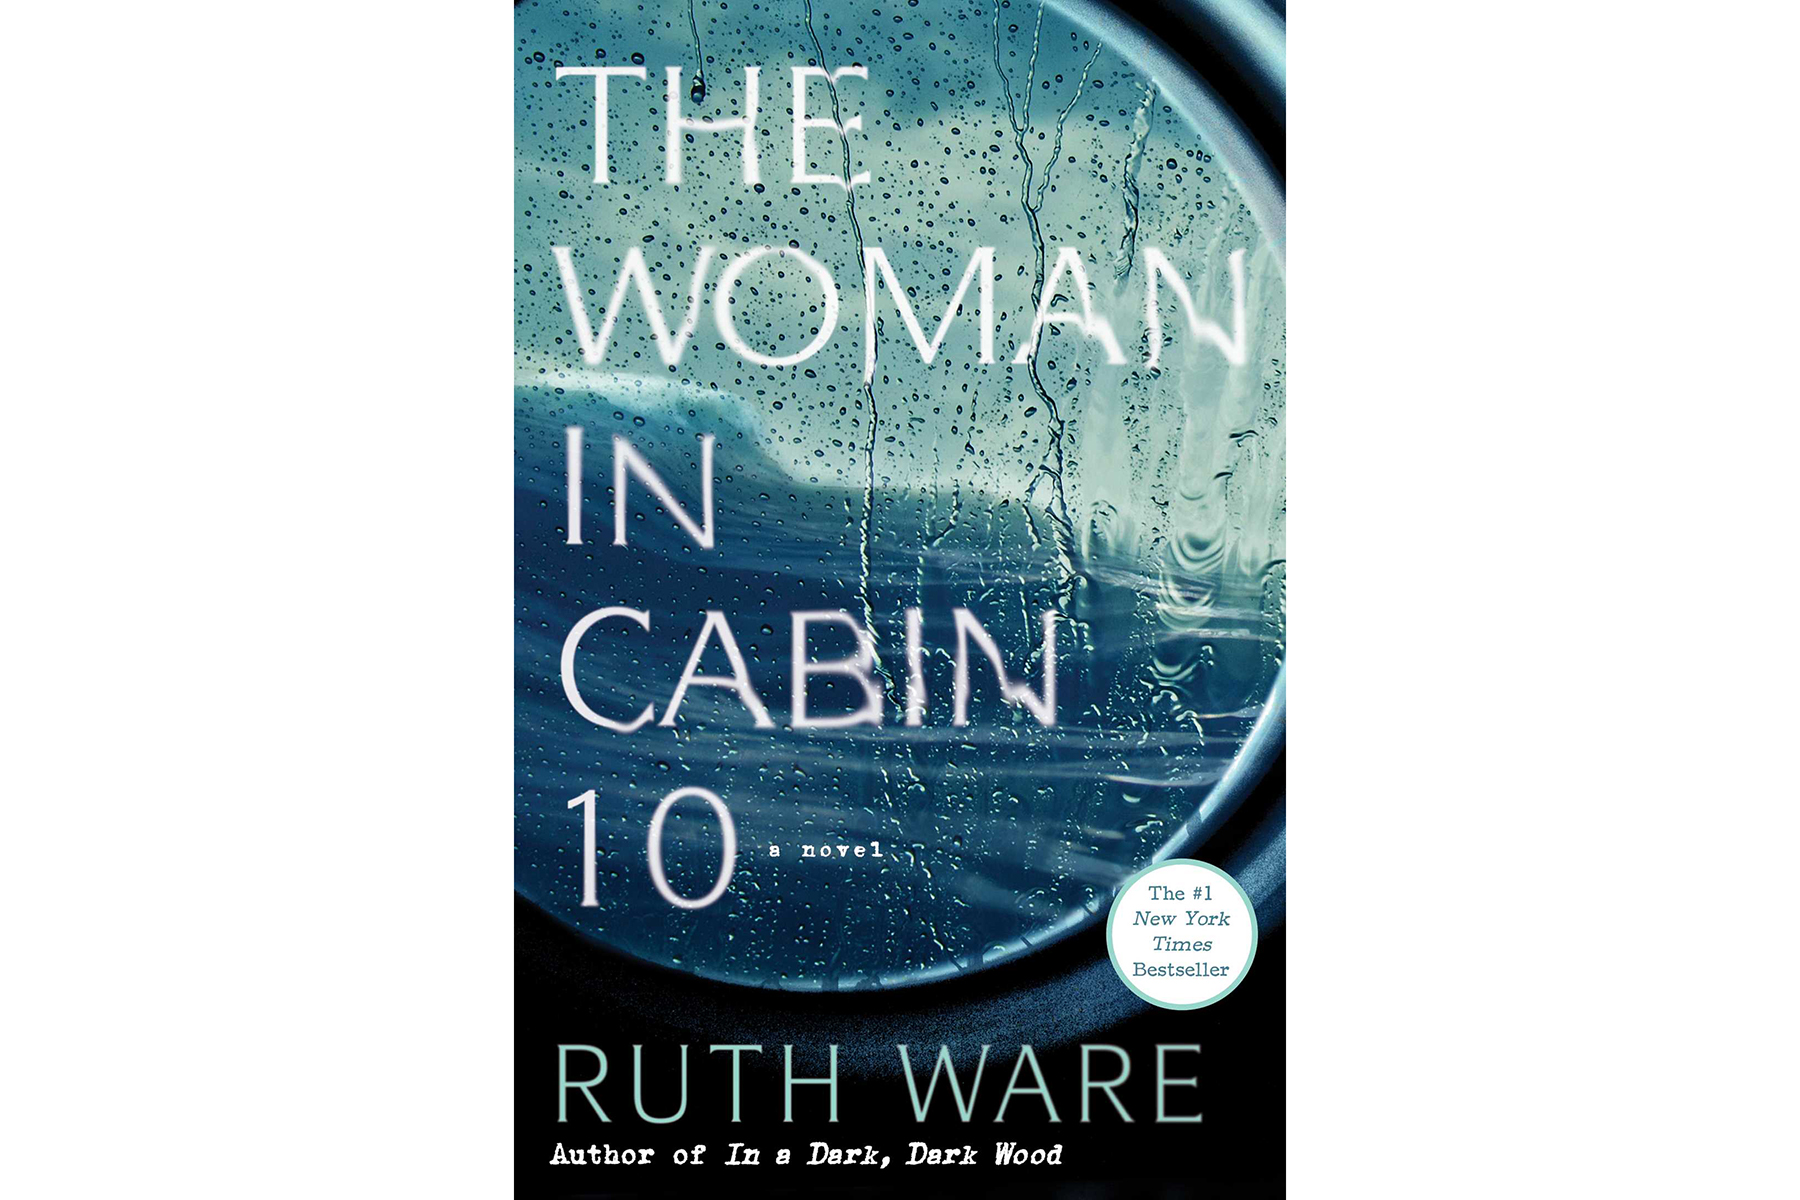 The Woman in Cabin 10, by Ruth Ware (Summer Books)